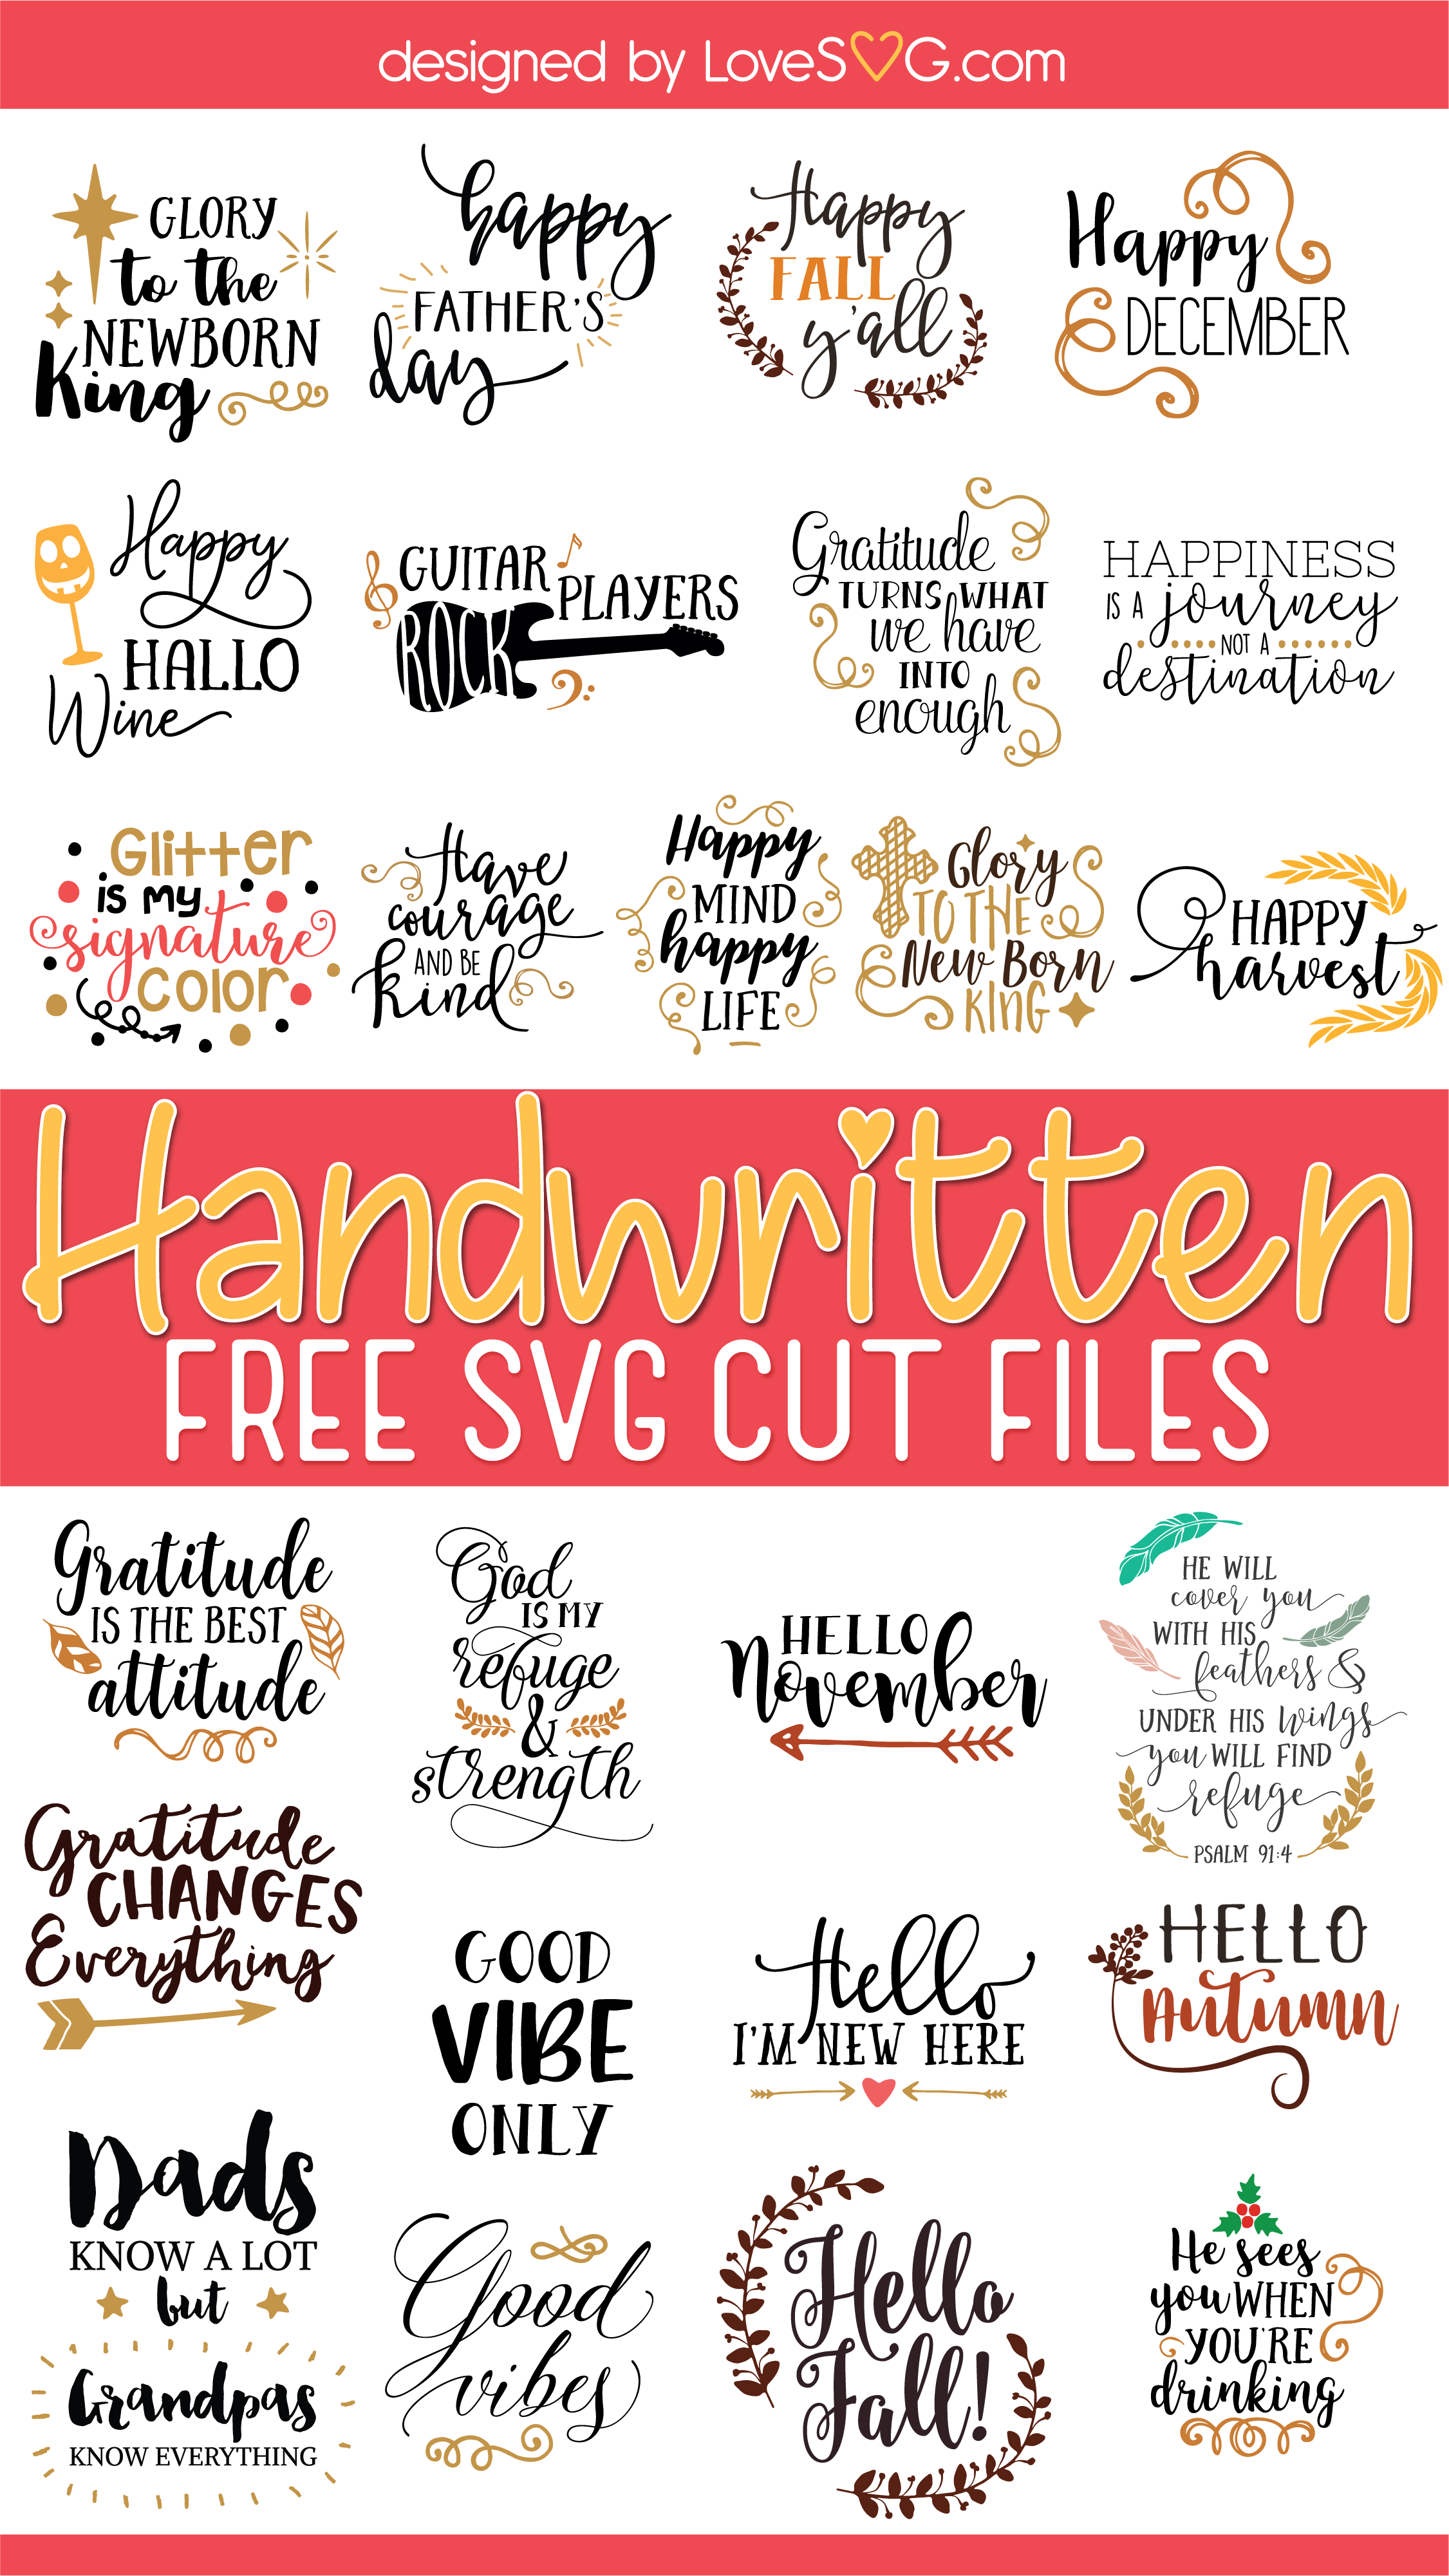 Download Pin on Free Quotes SVG Cut Files   LoveSVG.com